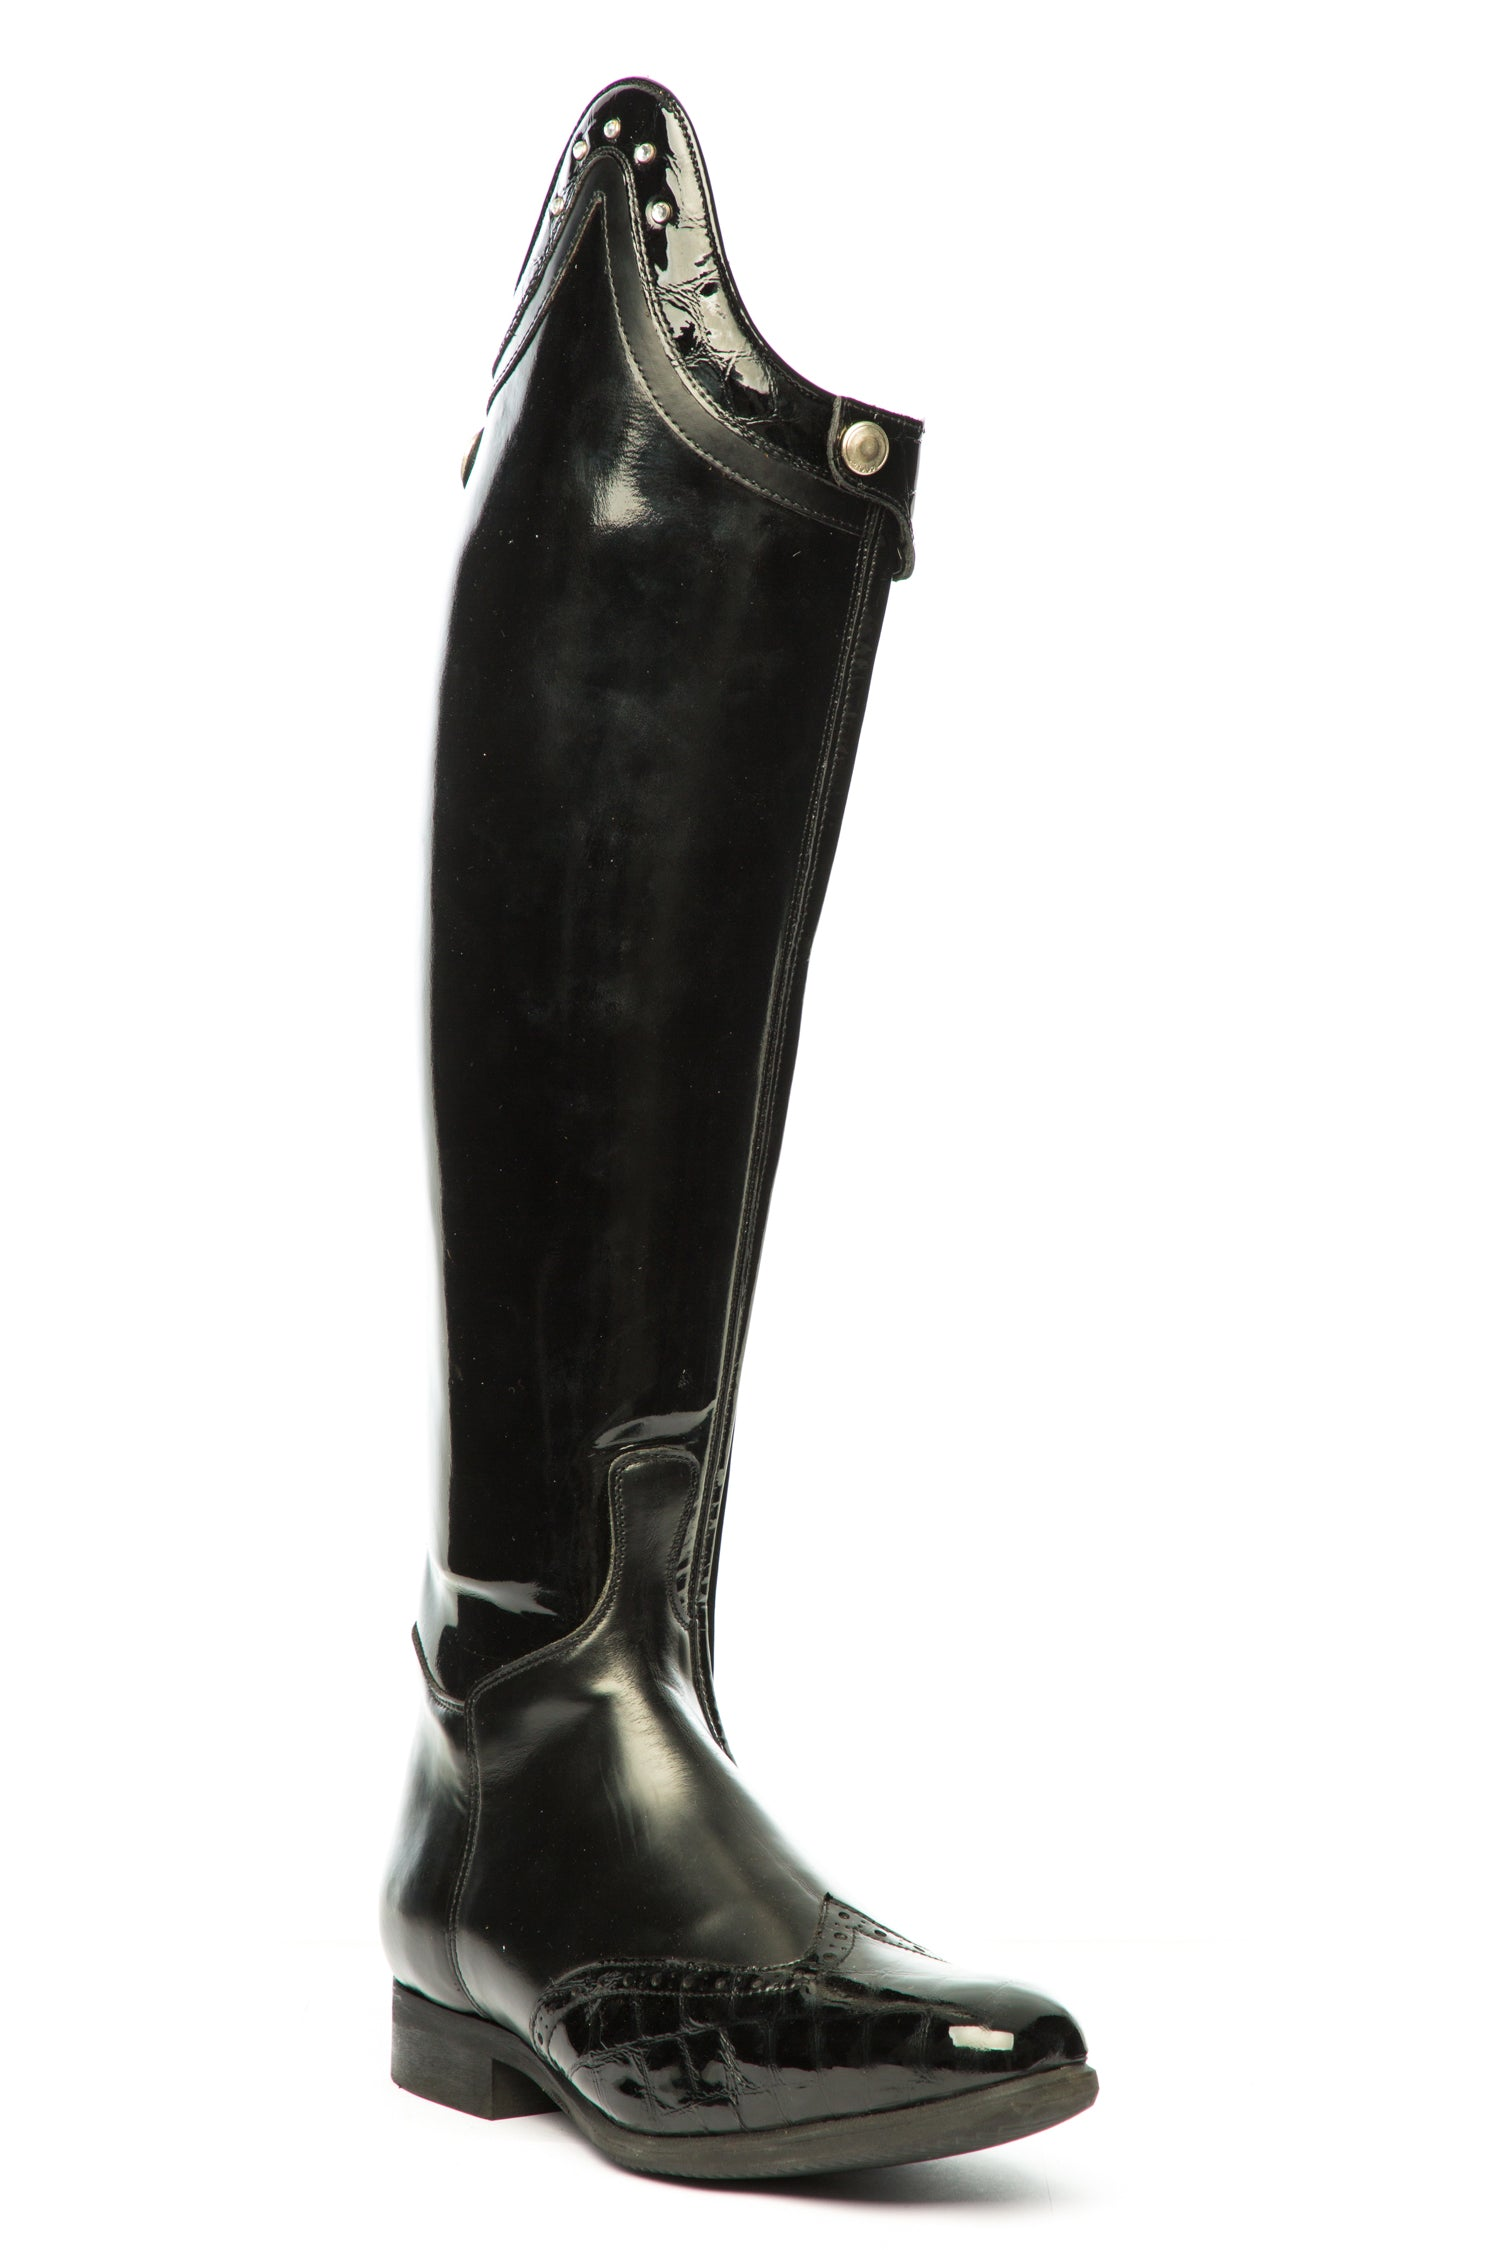 The Best Custom Riding Boots In The World